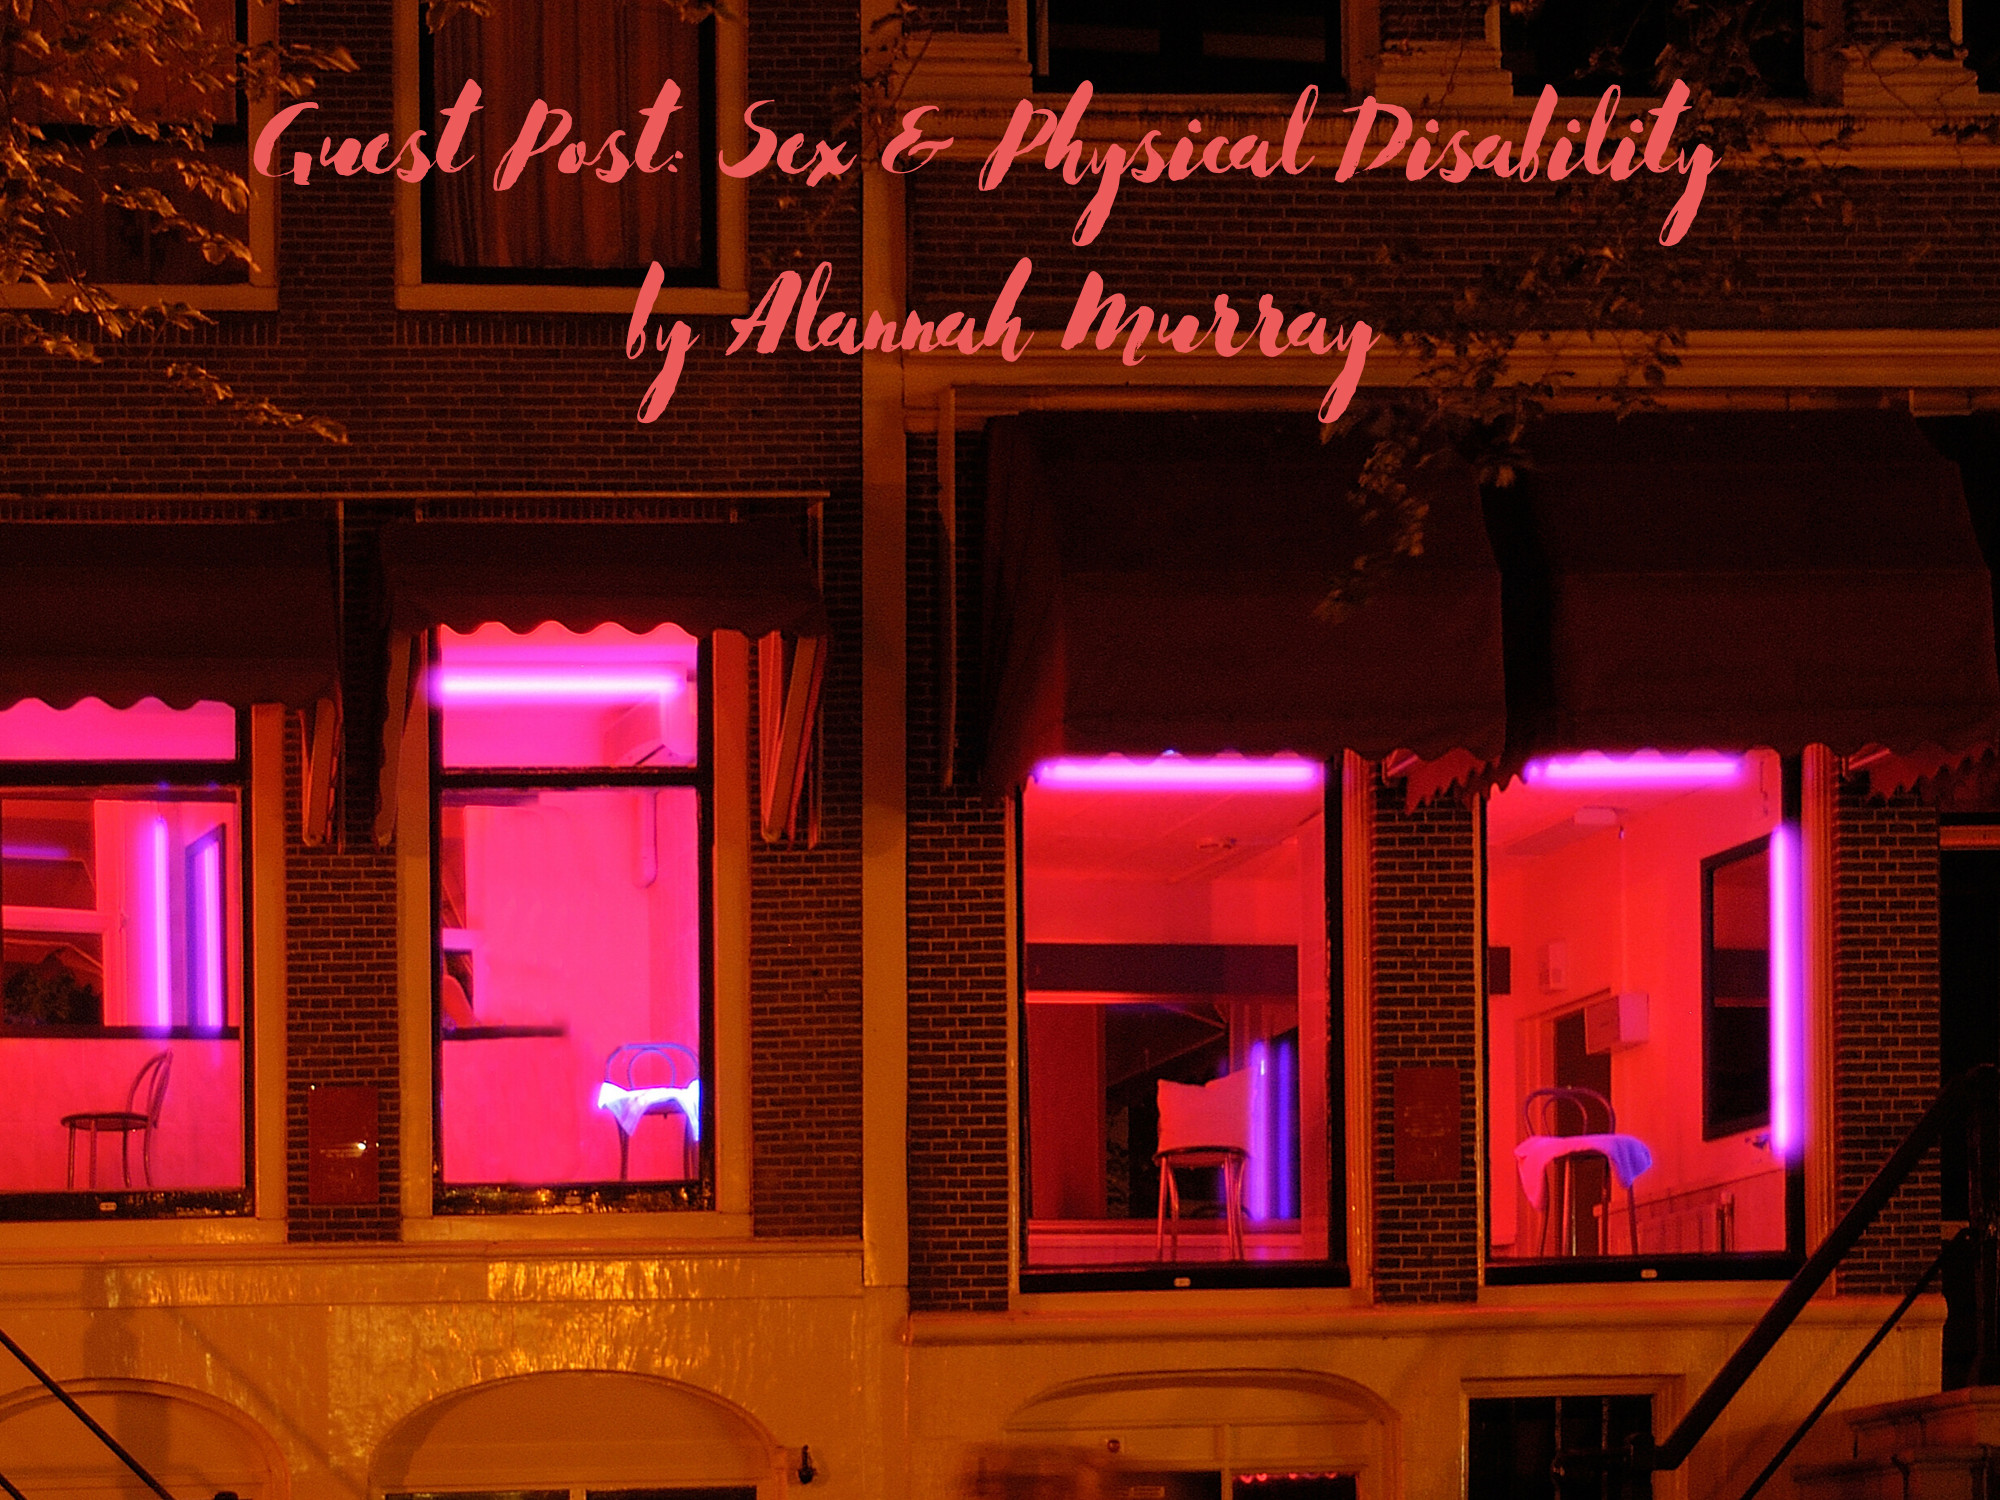 [Guest Blog] Sex & Physical Disability by Alannah Murray